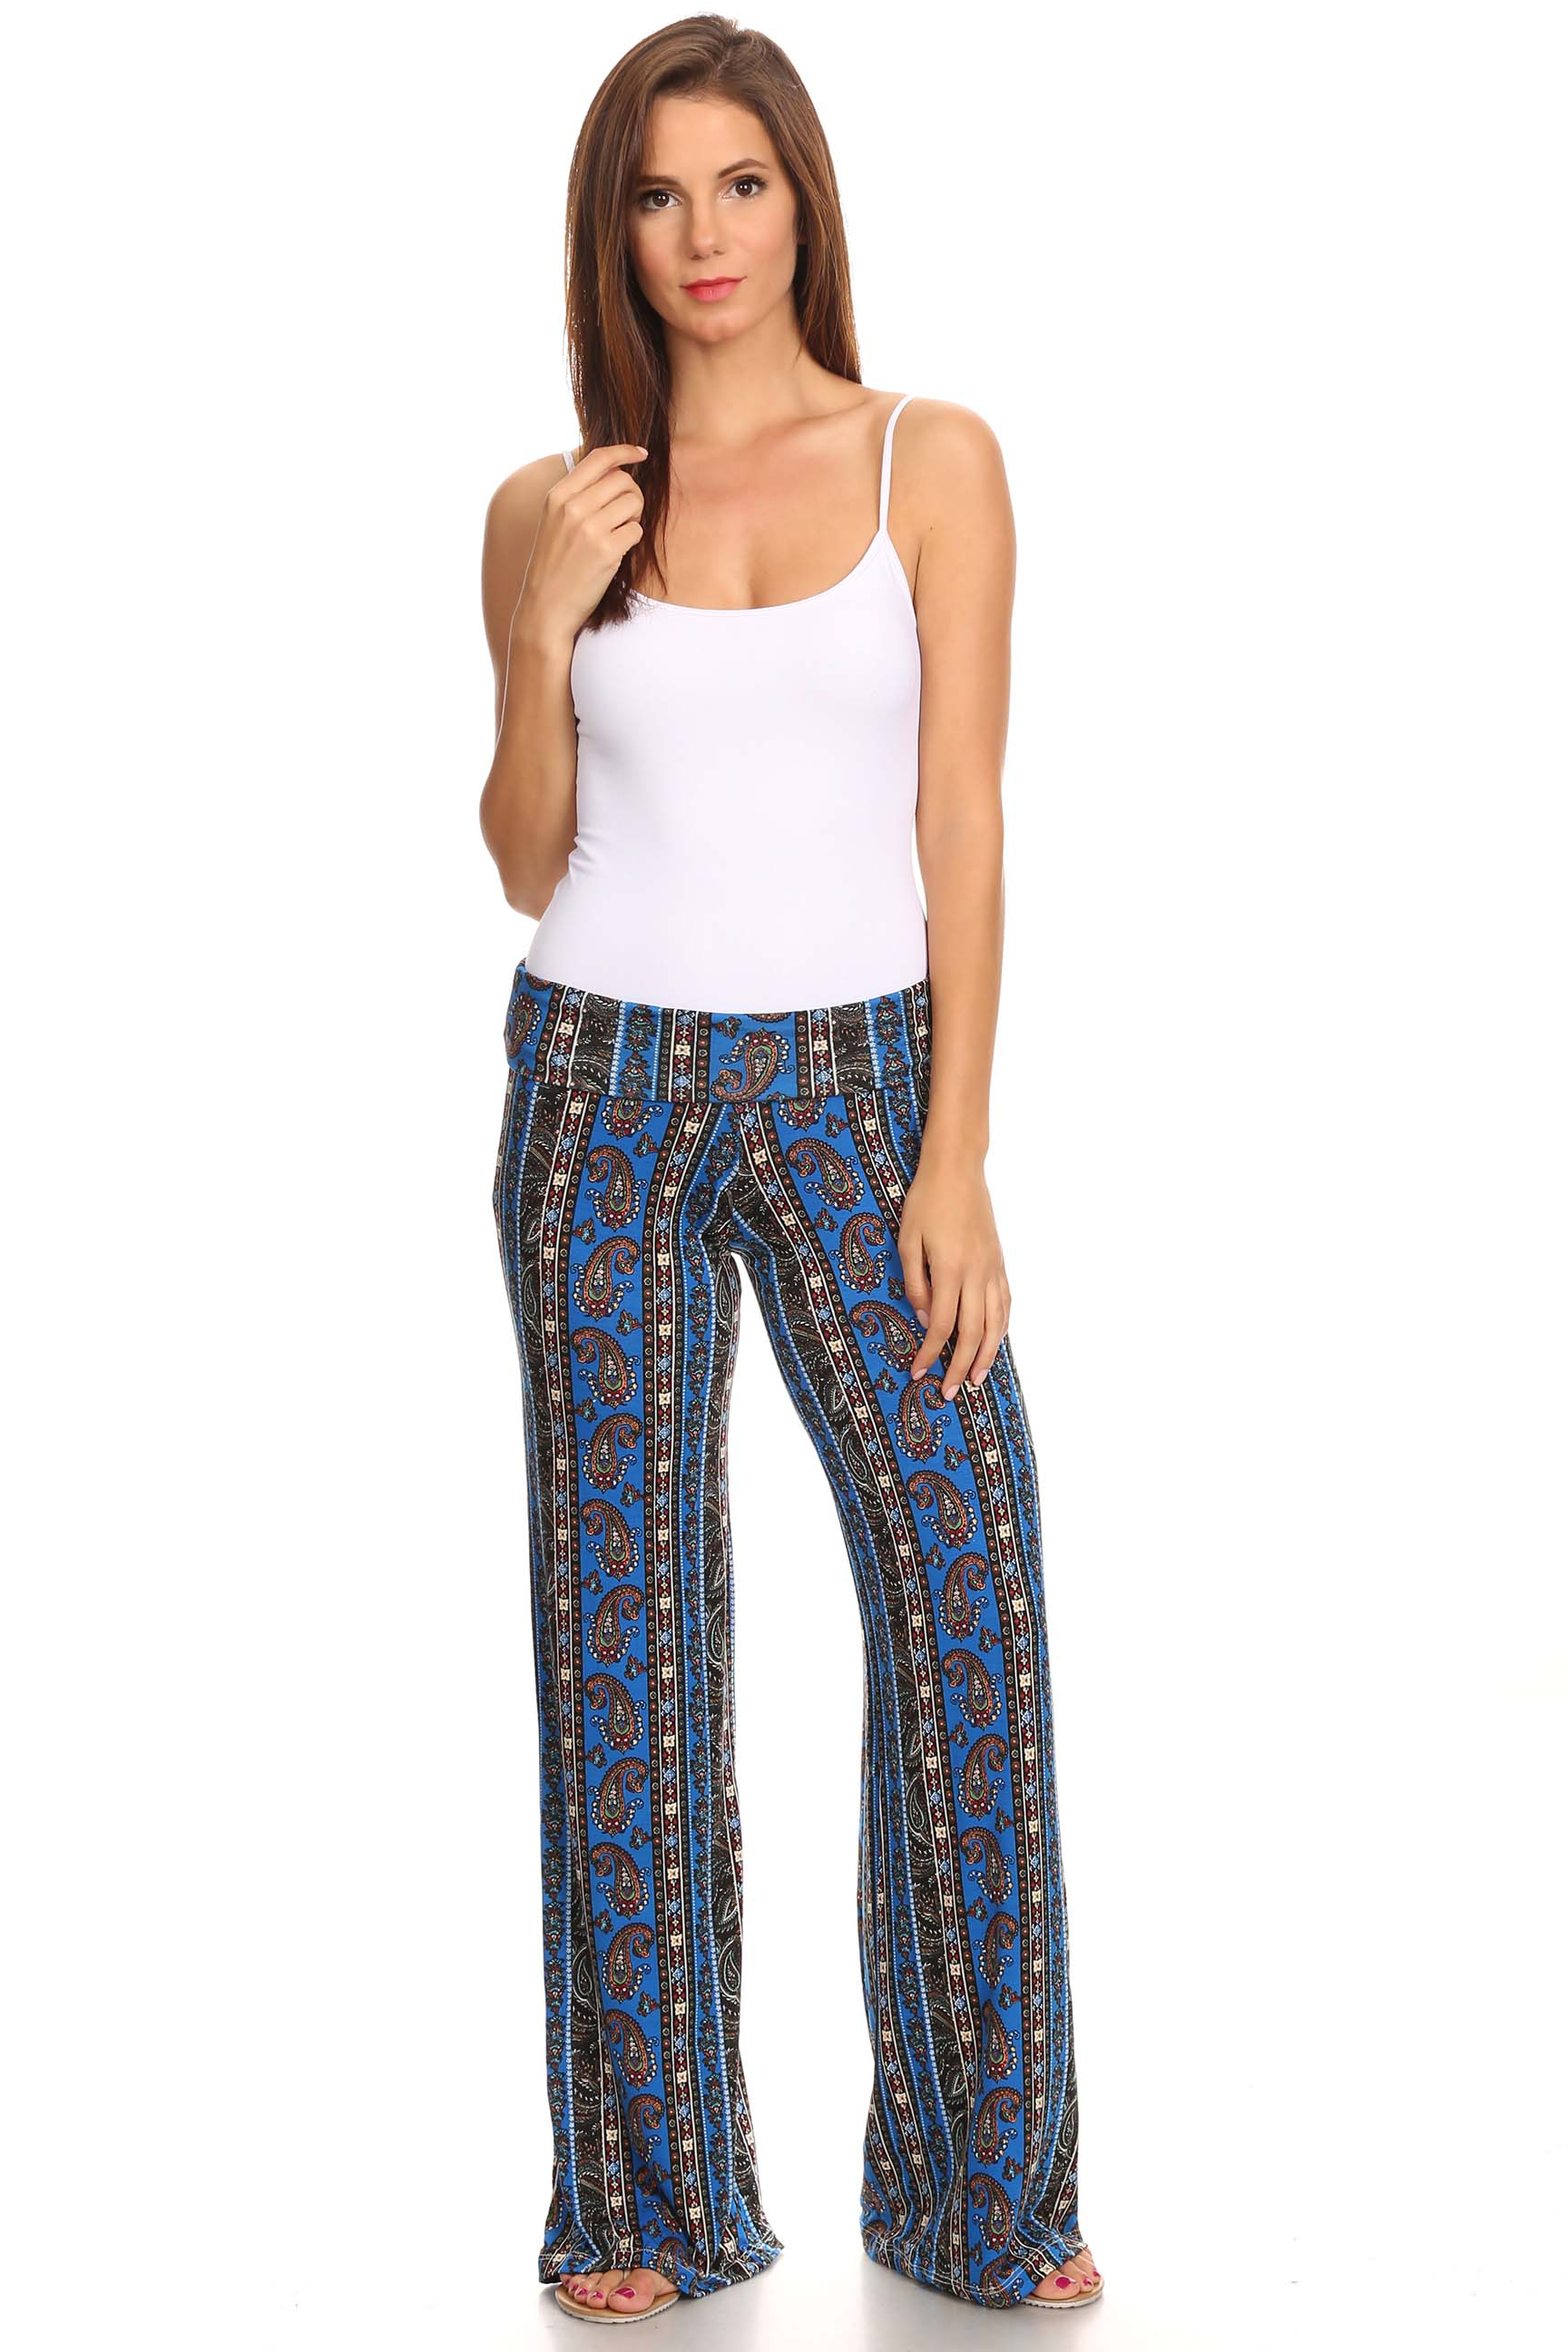 Amazing Pants That Let You Loosen Up Cut With A Loose, Exceptionally Wide Leg That Flares Out From The Waist, Palazzo Pants Are Long Trousers For Women Other Types Of Wide Legged Trousers Are Also Available